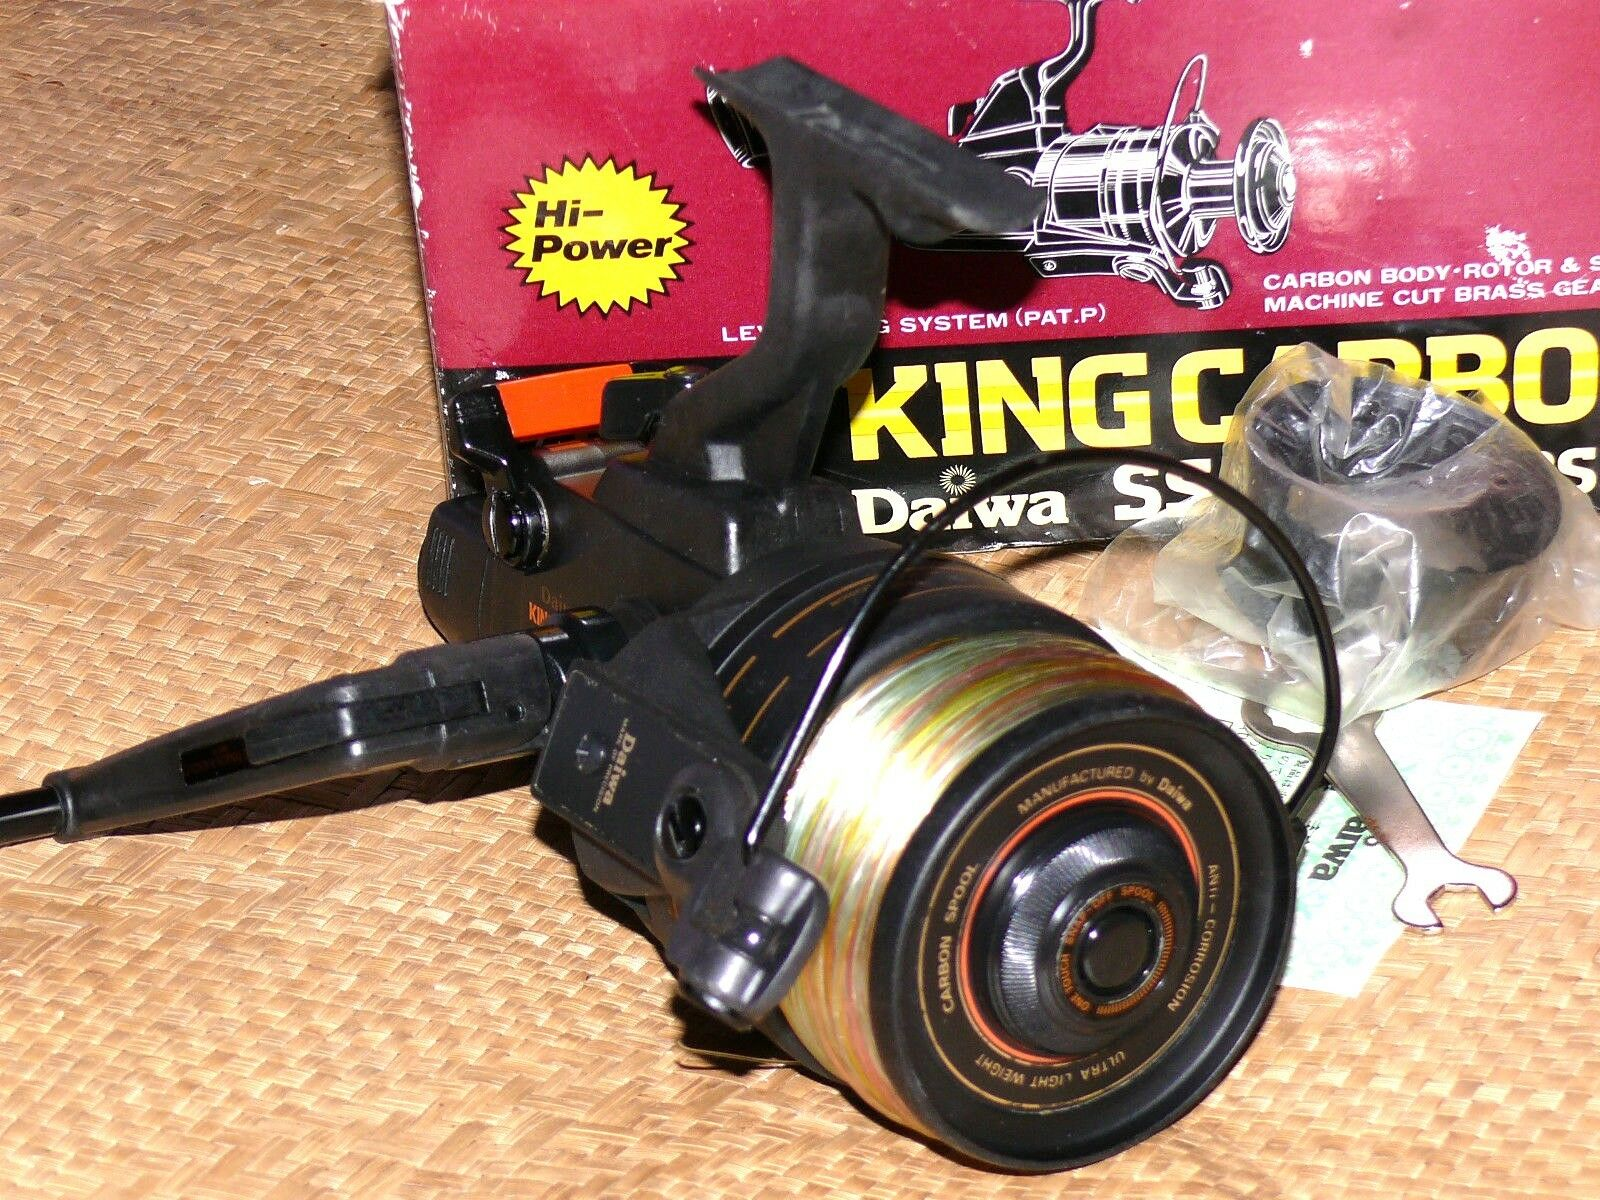 DAIWA SS 9000LDS KING CARBO  FISHING REEL Made in Japan Execellent